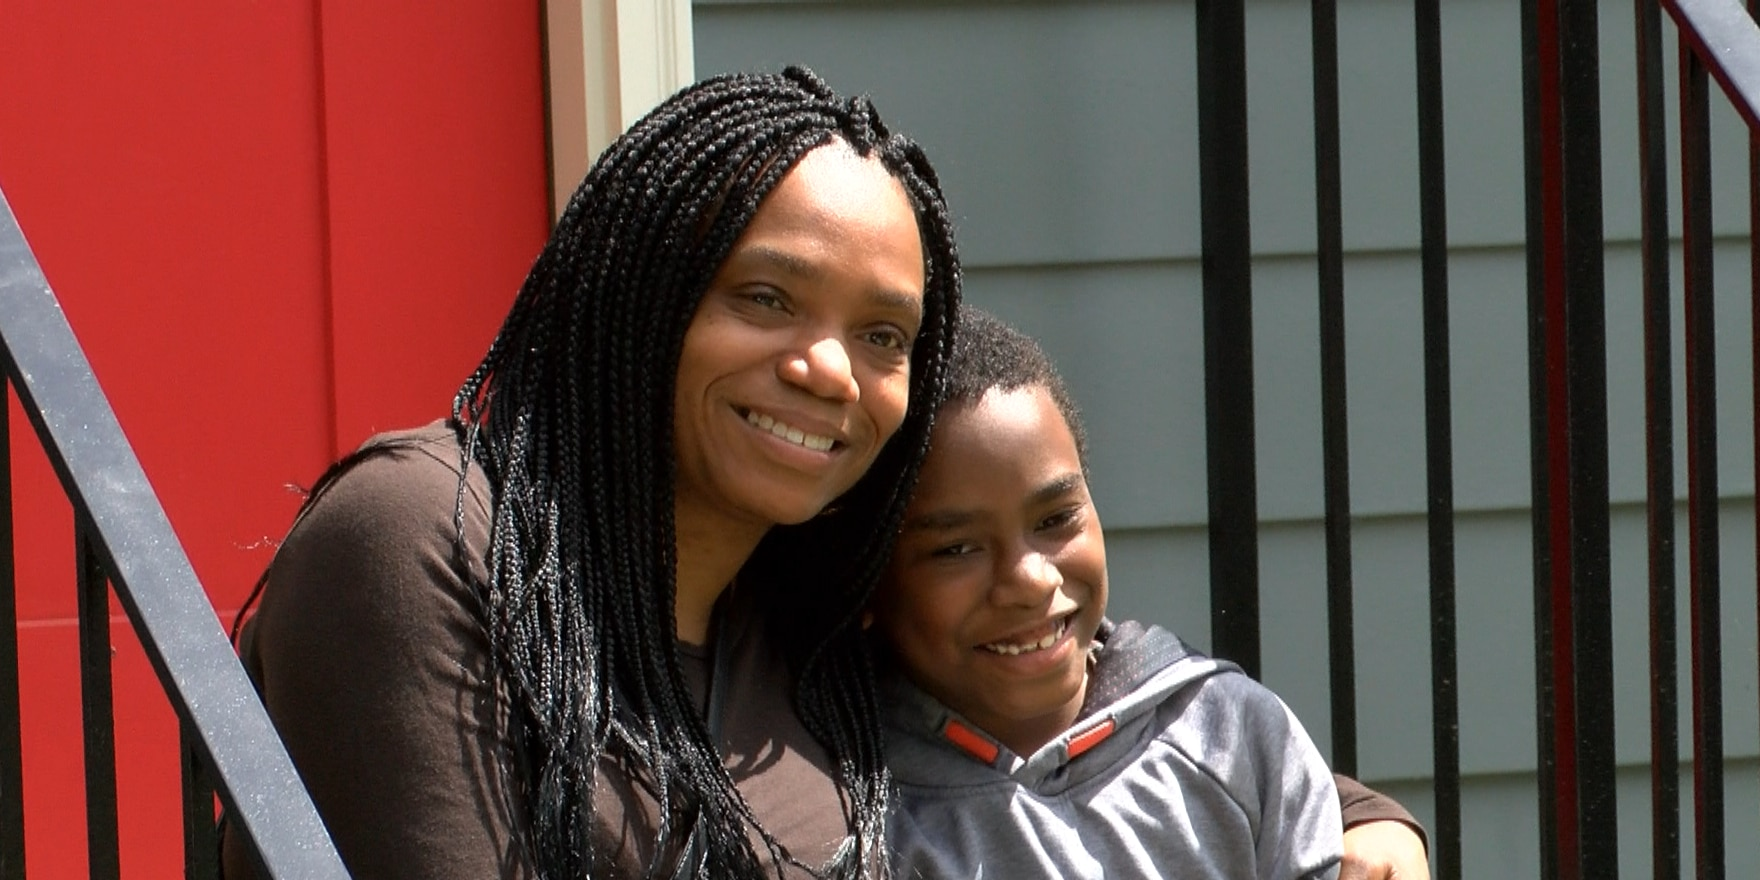 Health care worker gets keys to new home thanks to Habitat for Humanity